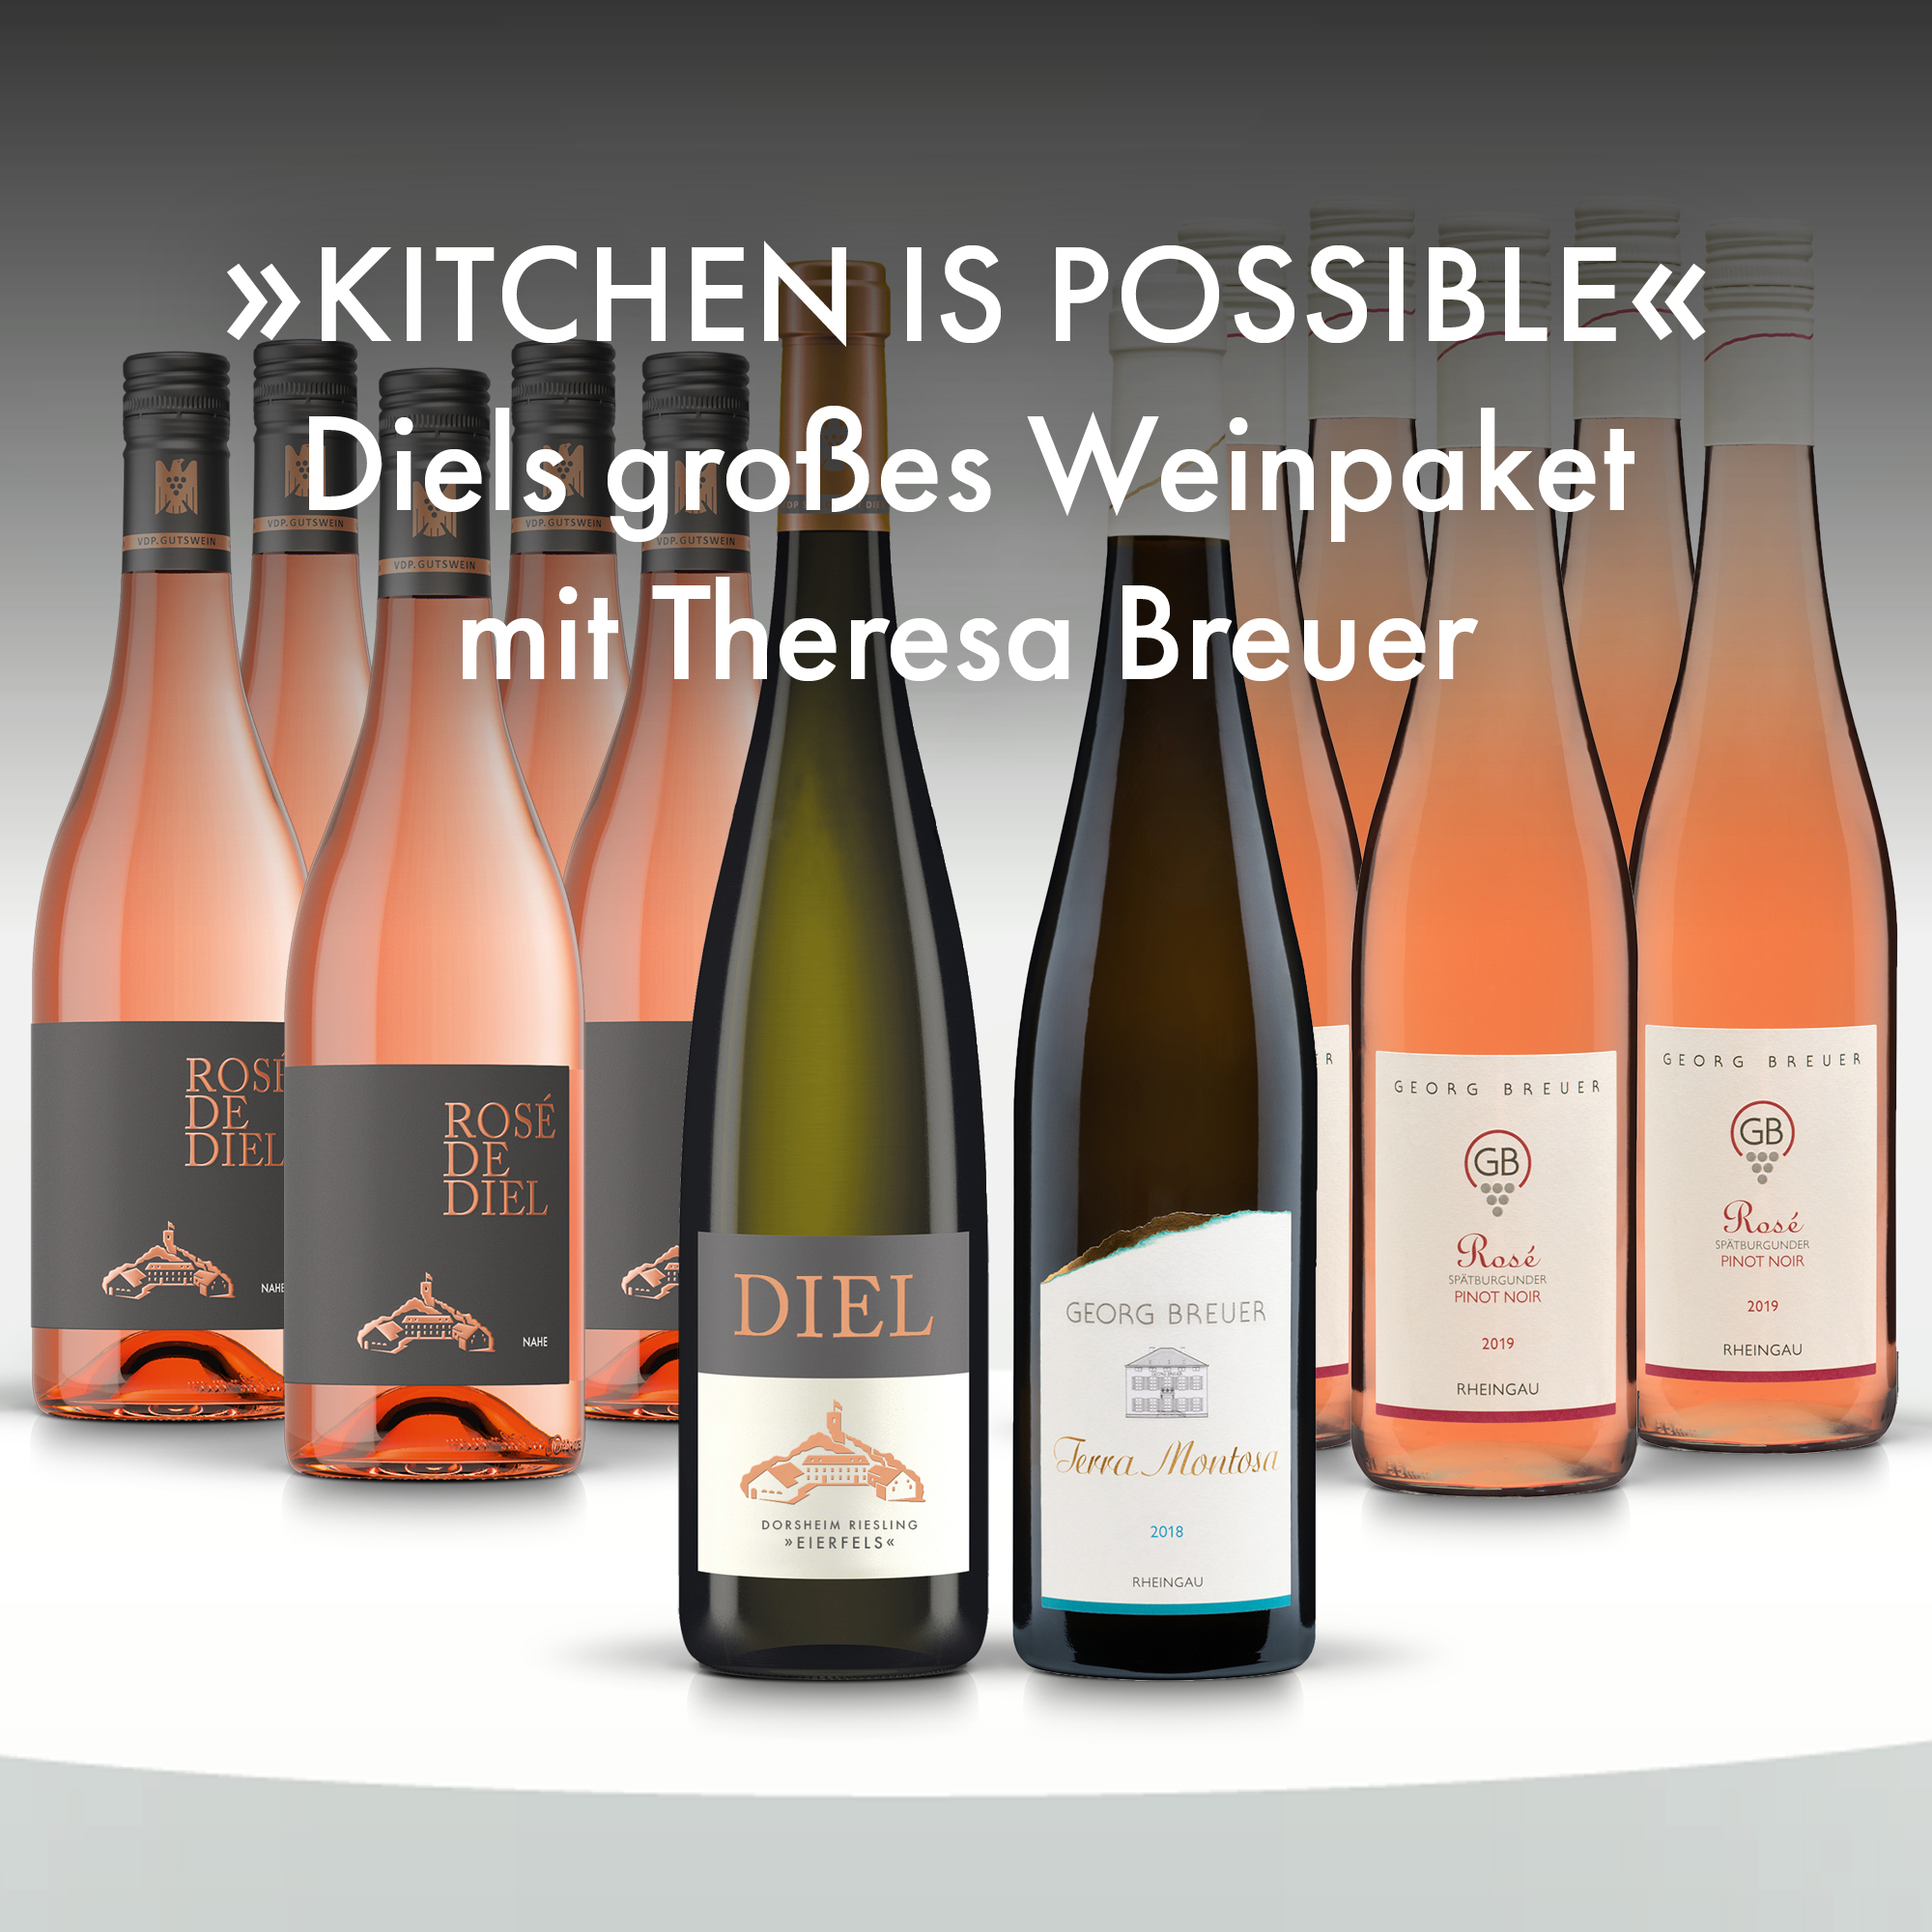 Collection 19 - Kitchen is possible : Diels großes Weinpaket mit Theresa Breuer